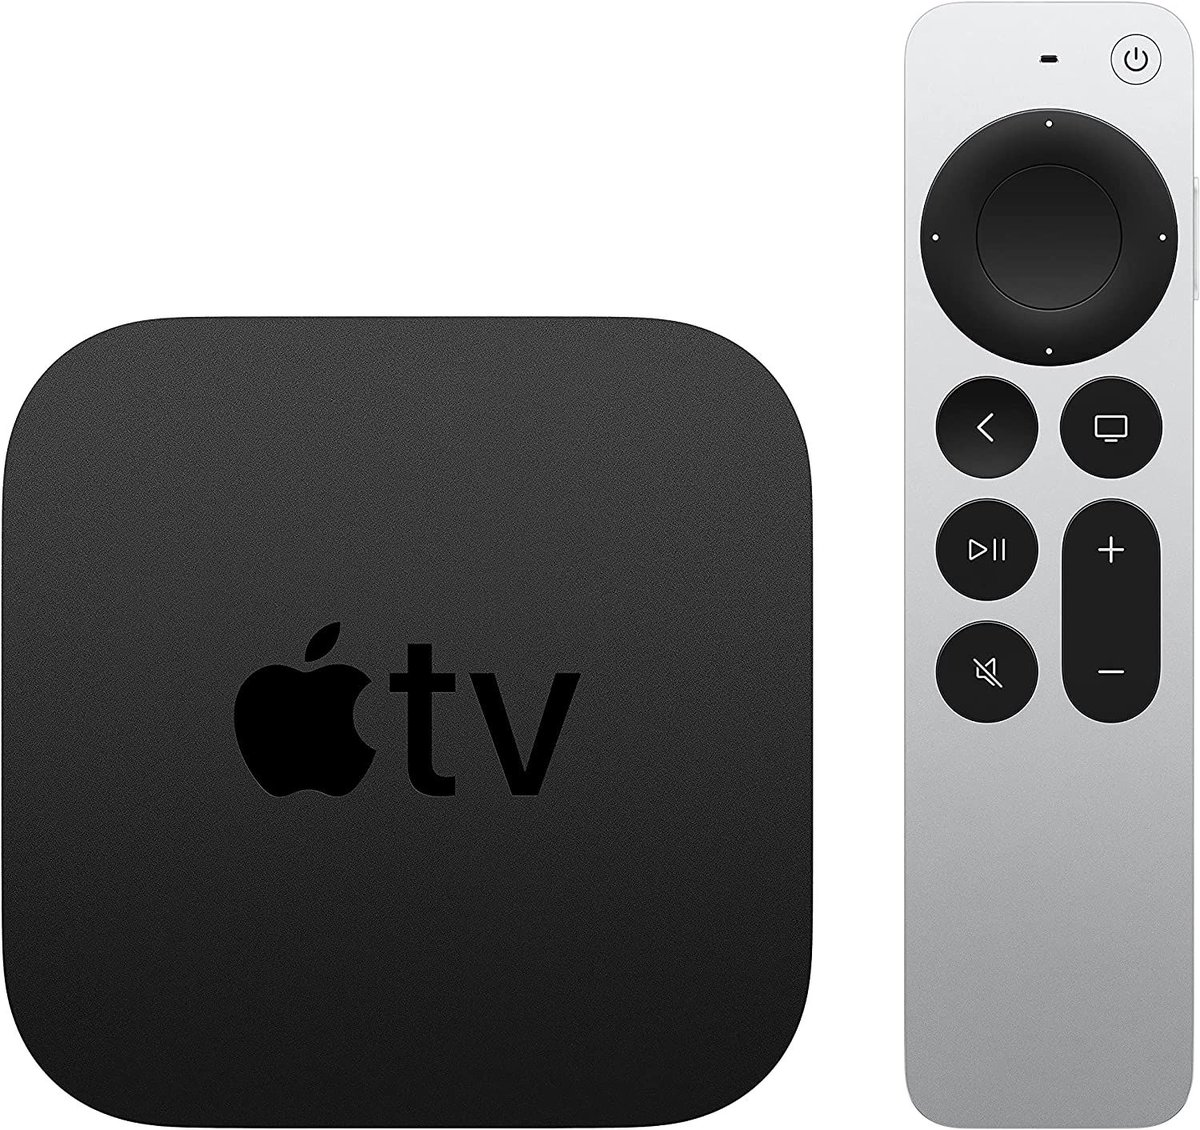 ad: ONLY $179.98  2021 Apple TV 4K (64GB)